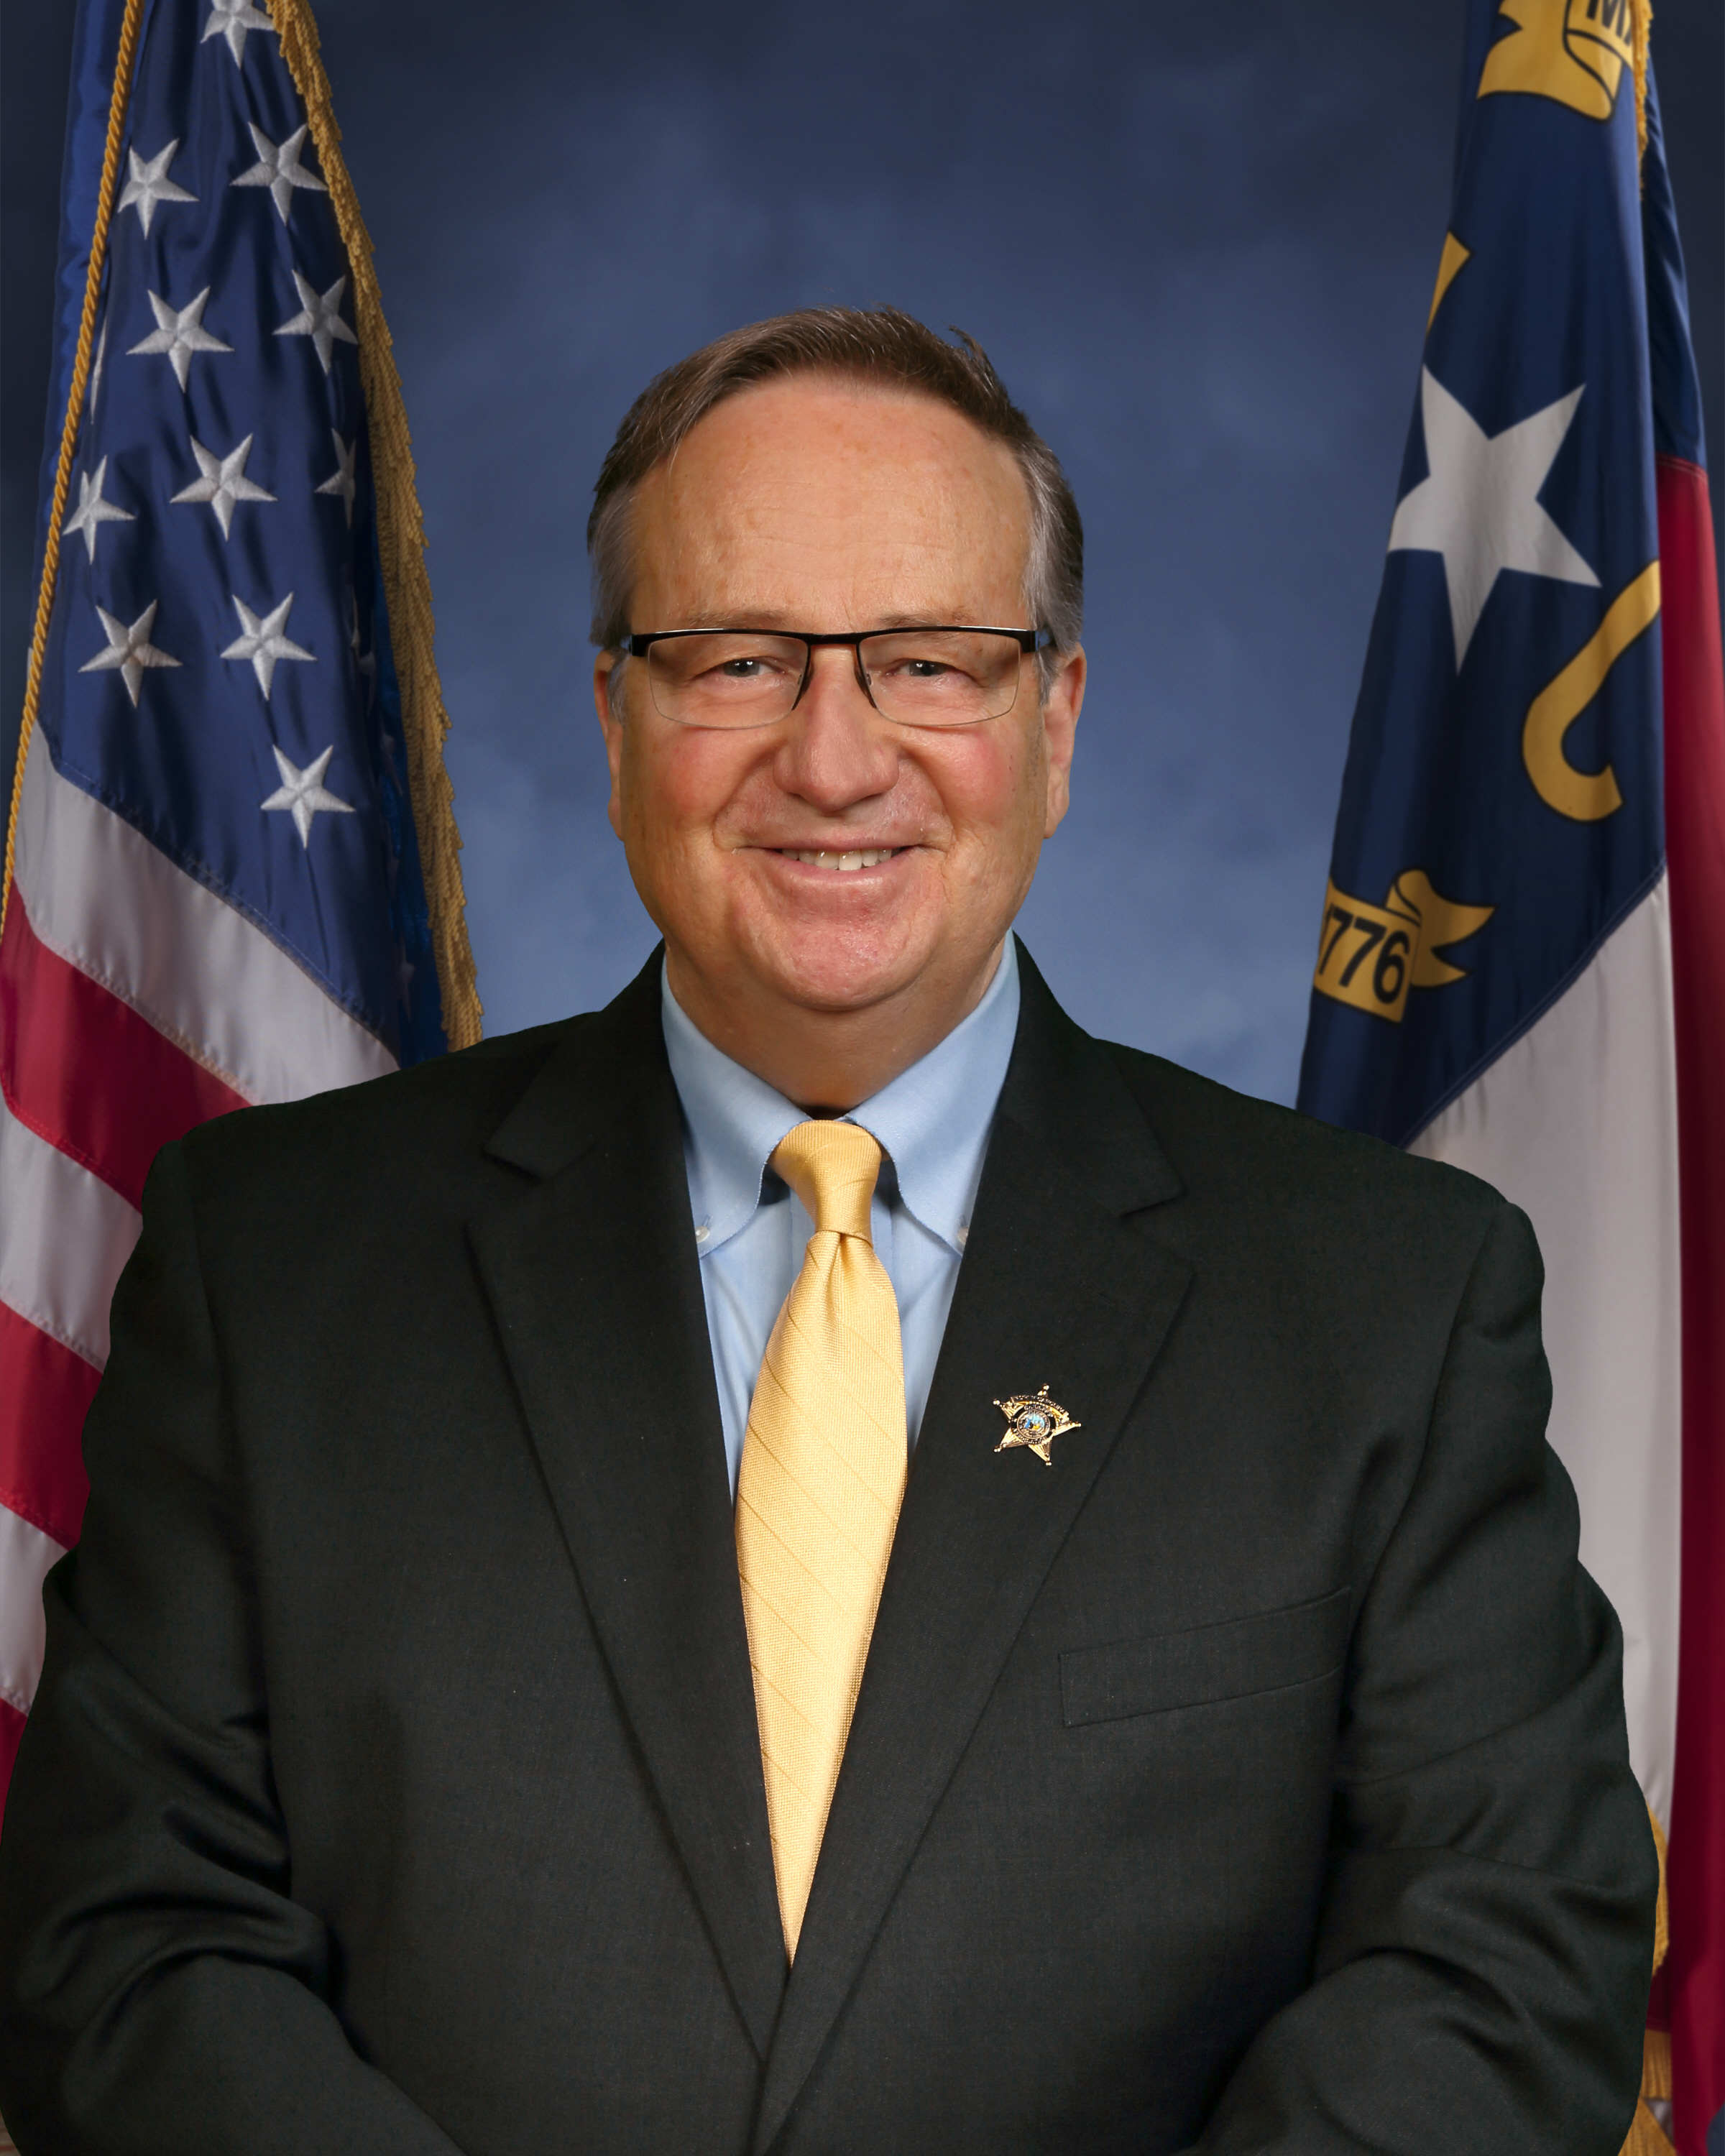 Sheriff Larry Pierce